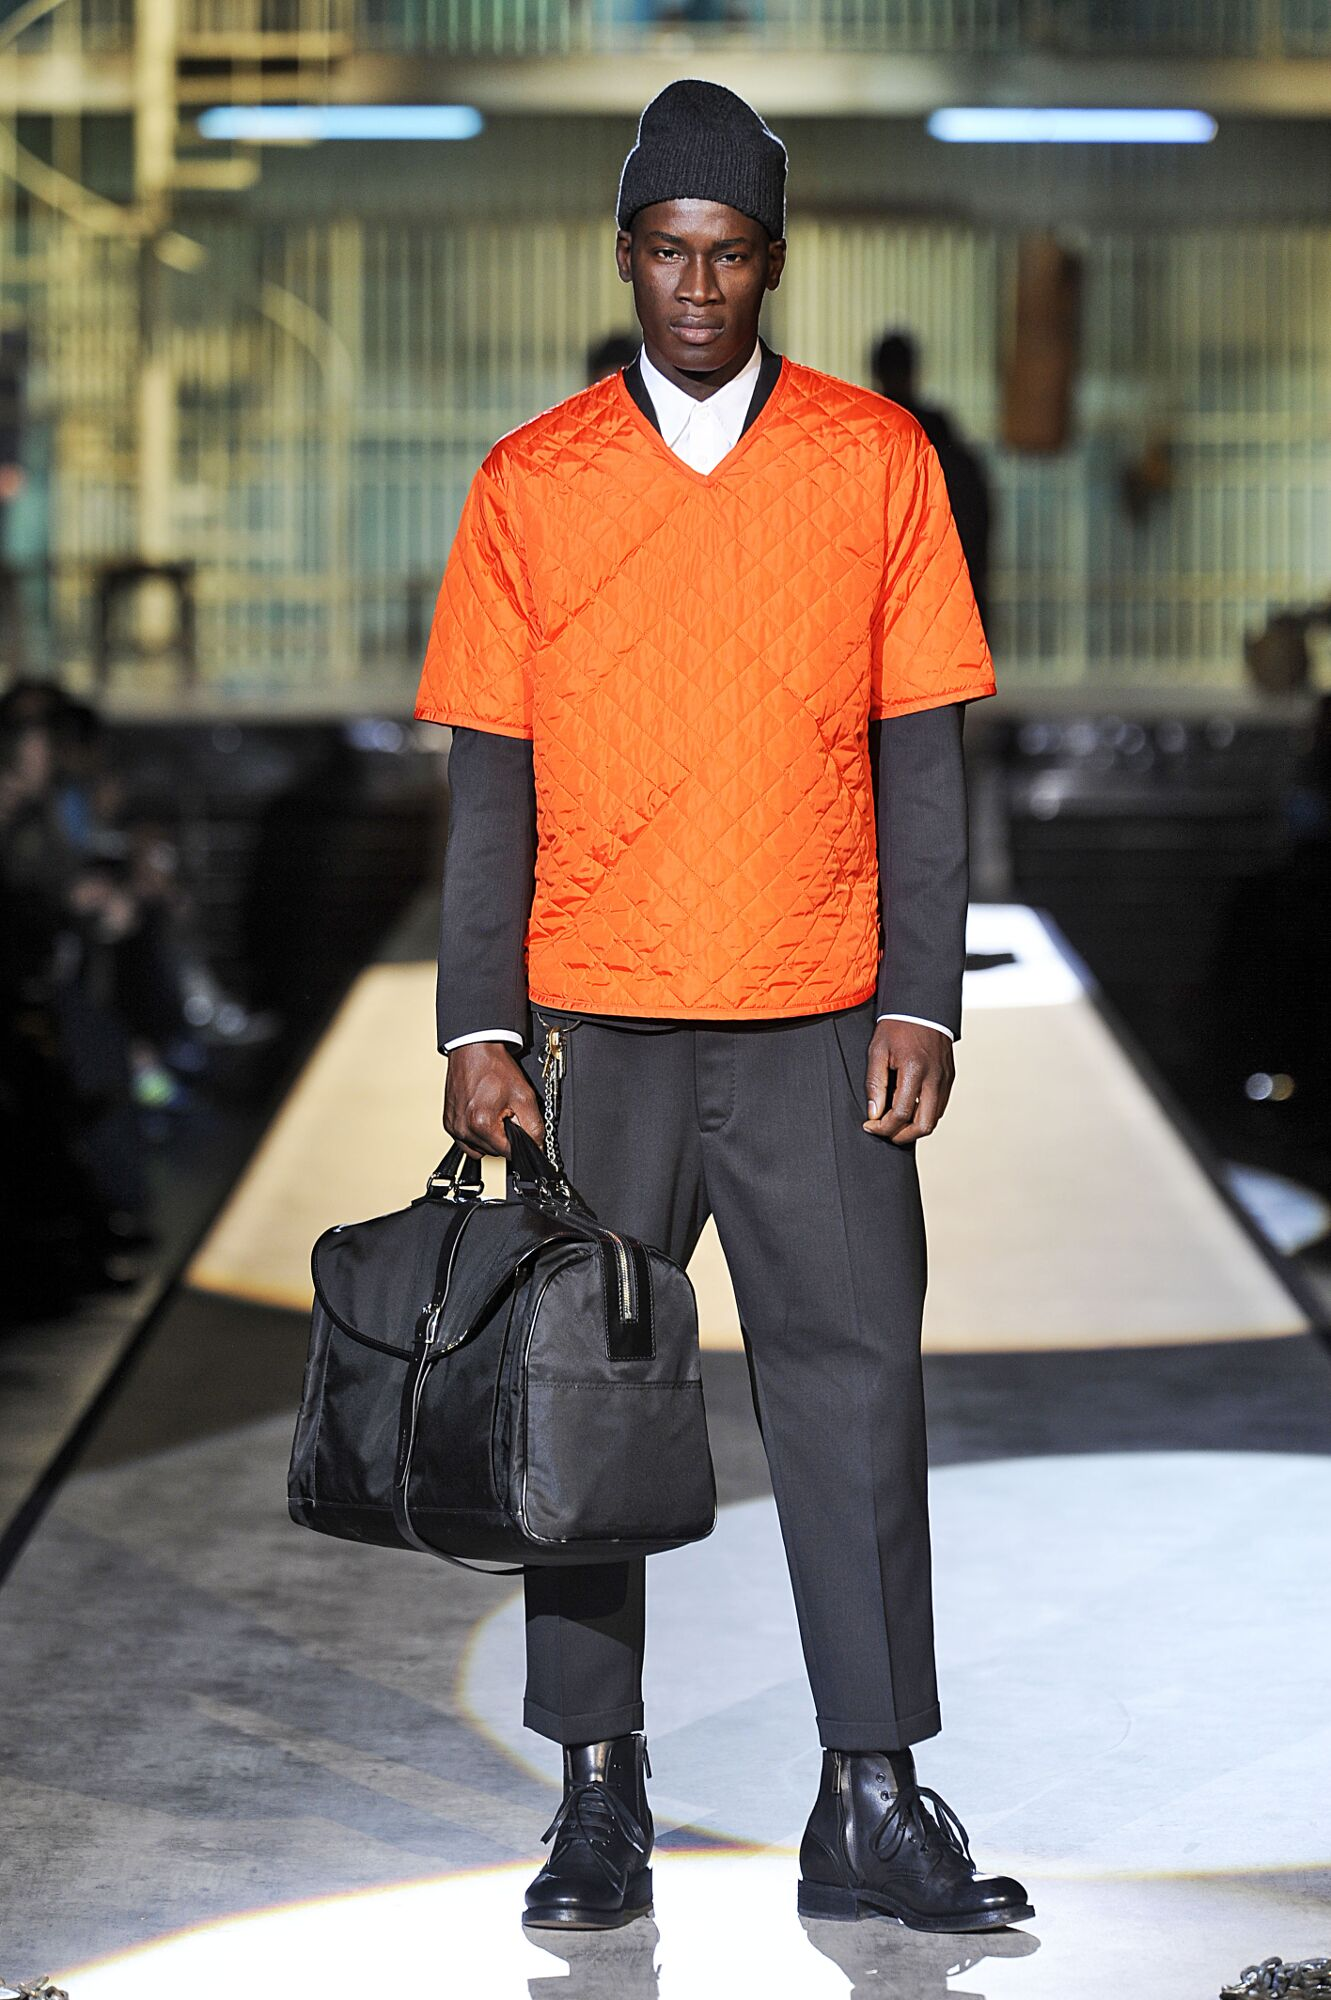 DSQUARED2 FALL WINTER 2014 MENS COLLECTION The Skinny Beep